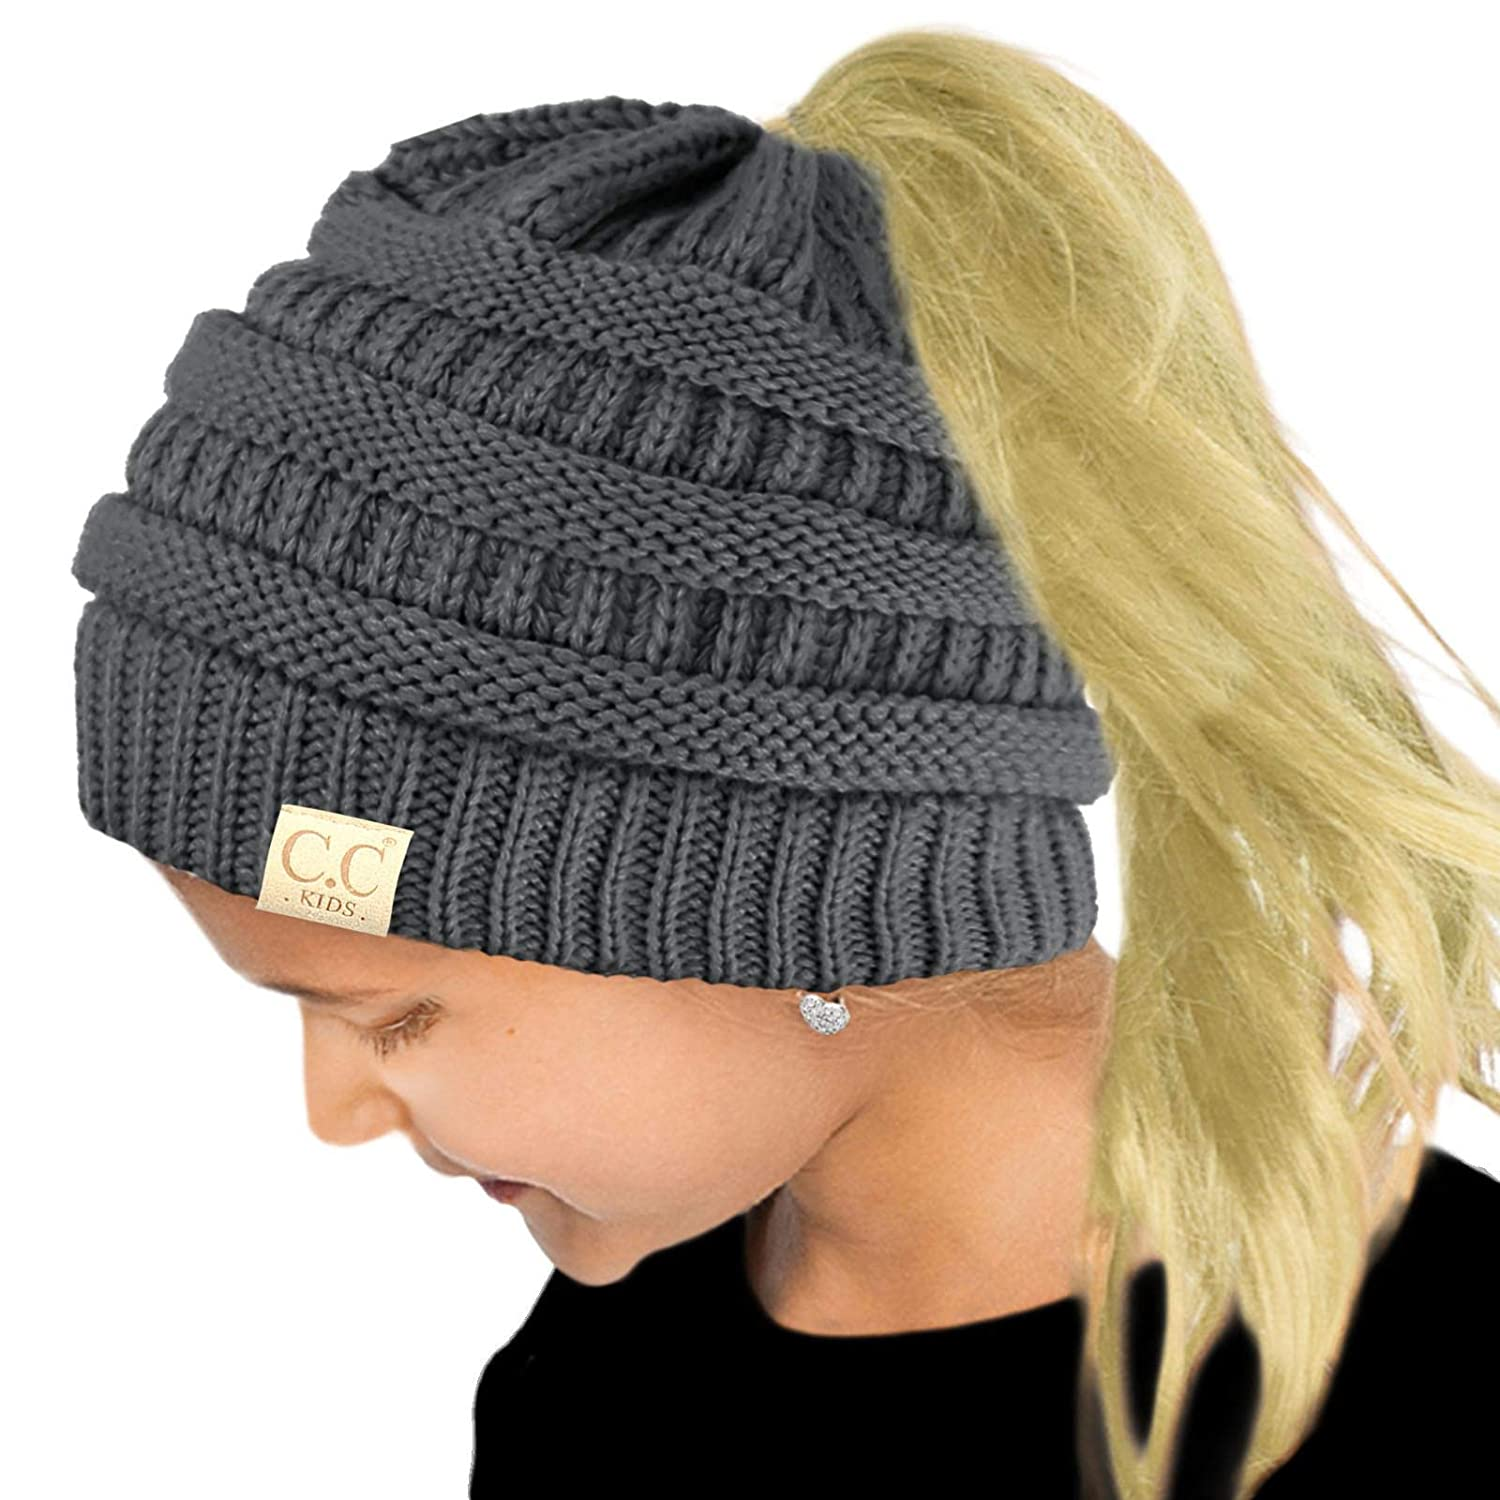 ed8600e8de780 Amazon.com  Kids Ponytail Messy Bun BeanieTail Soft Winter Knit Stretch  Beanie Hat Quad Black Multi  Clothing